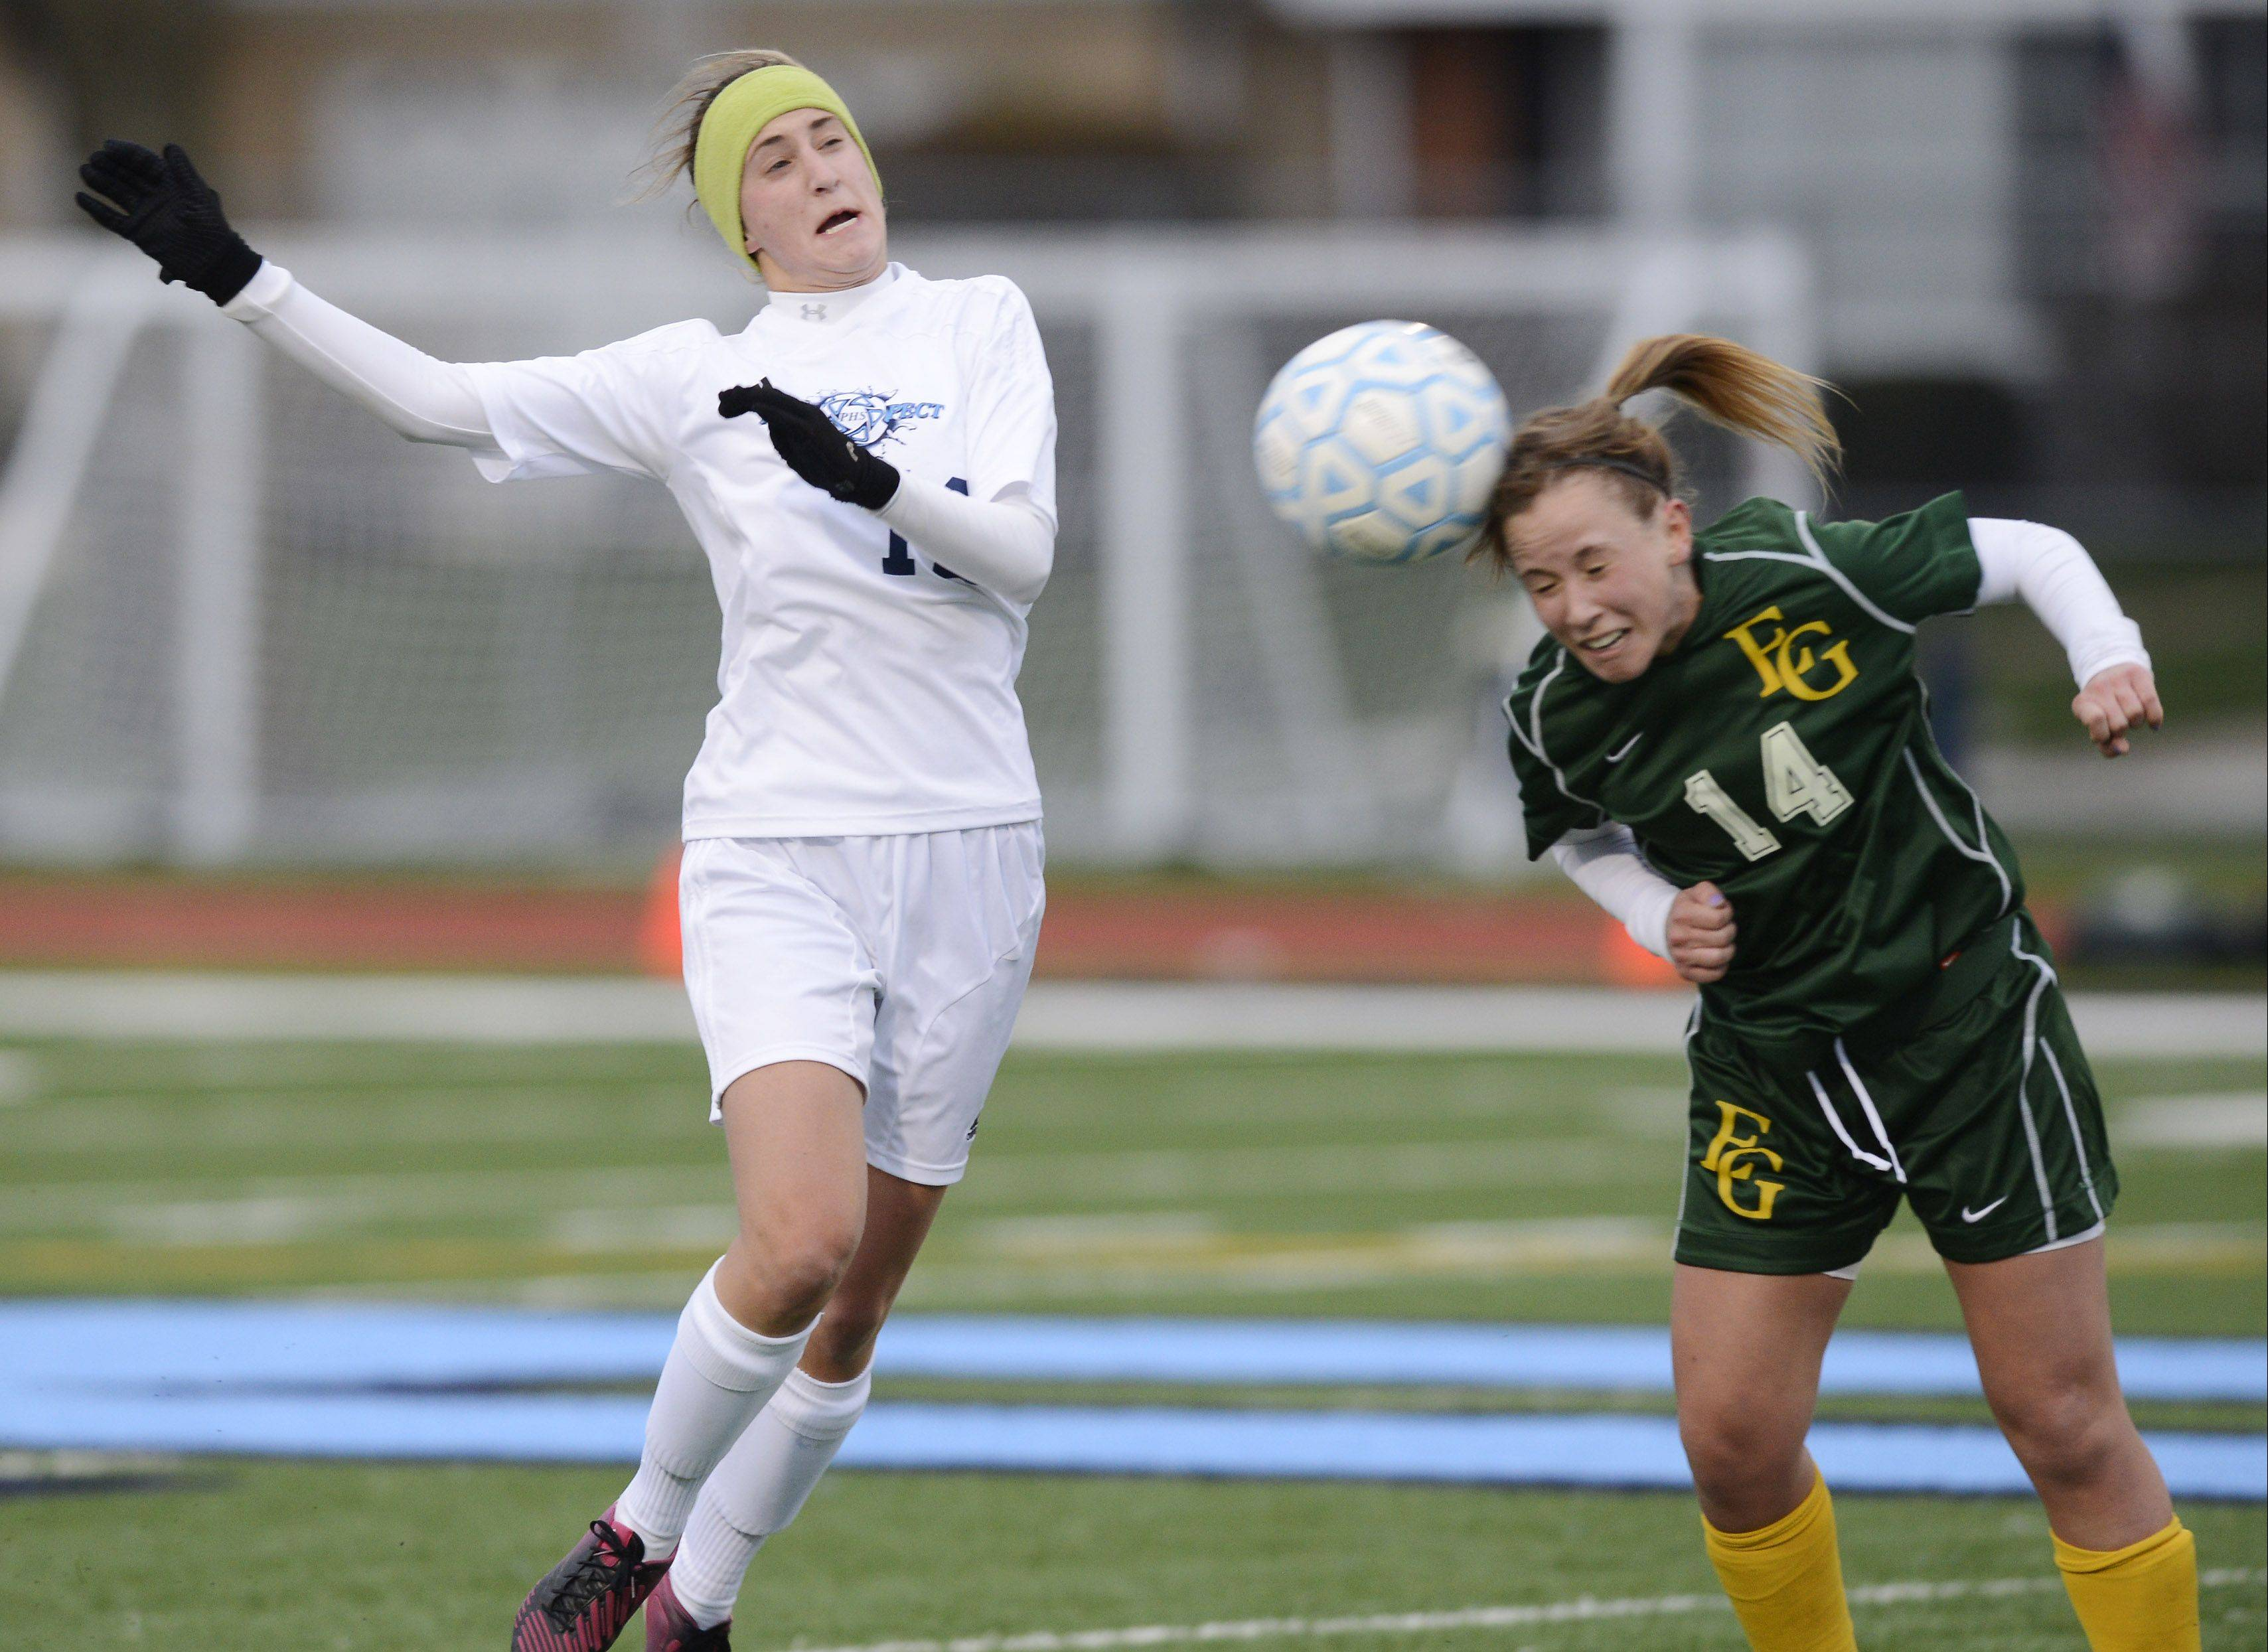 Elk Grove's Kelly Regan, right, directs the ball past Prospect's Emily Novak during Friday's game.